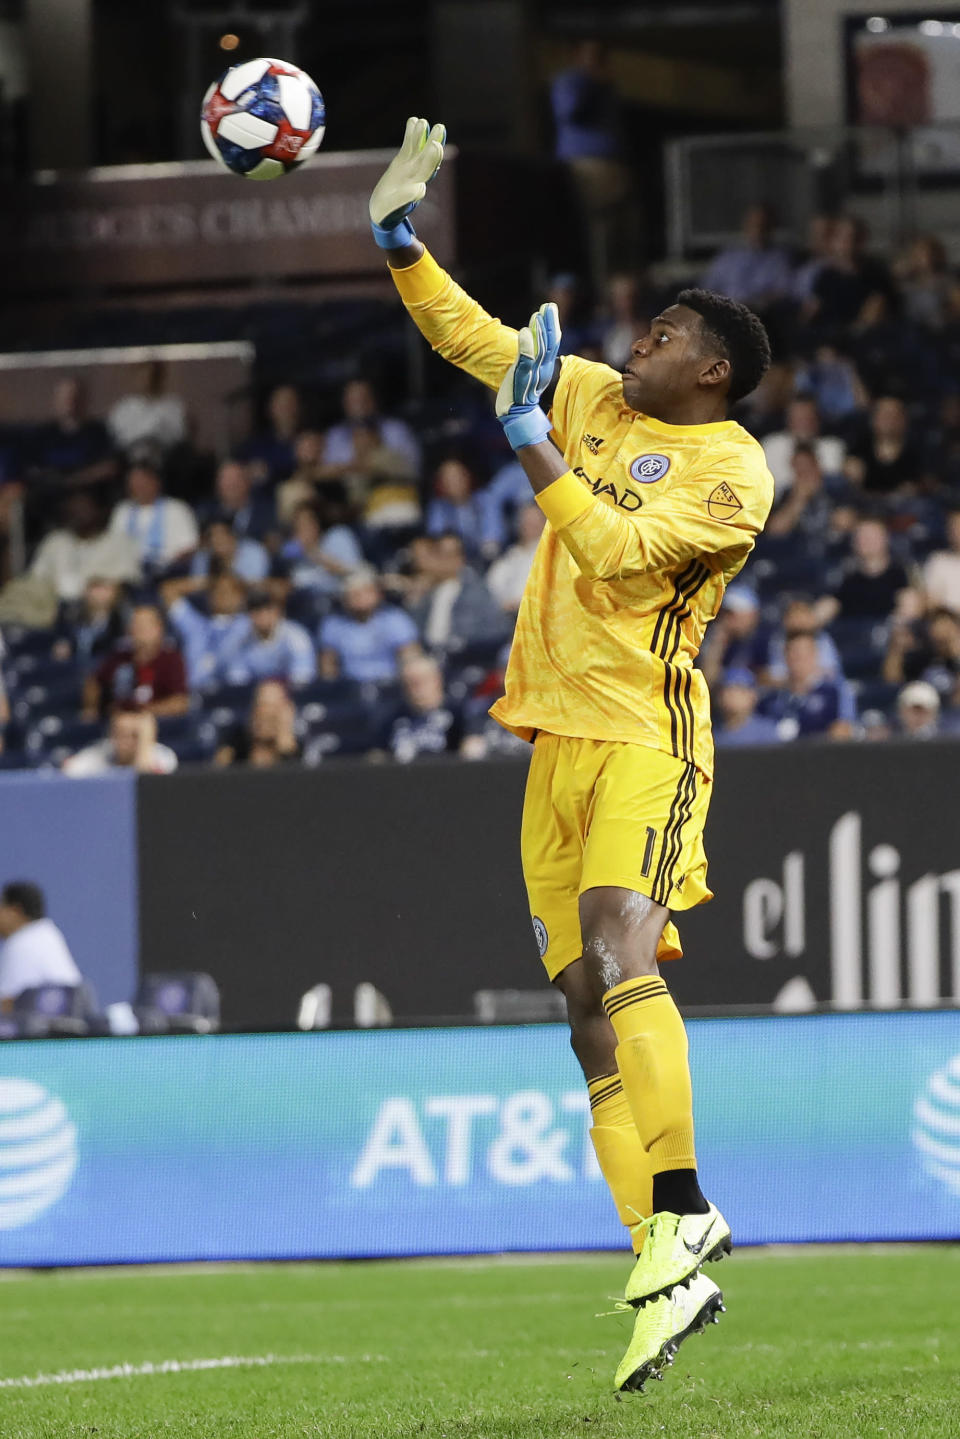 New York City FC goalkeeper Sean Johnson deflects a shot on the goal during the second half of an MLS soccer match against Toronto FC Wednesday, Sept. 11, 2019, in New York. The game ended in a 1-1 draw. (AP Photo/Frank Franklin II)